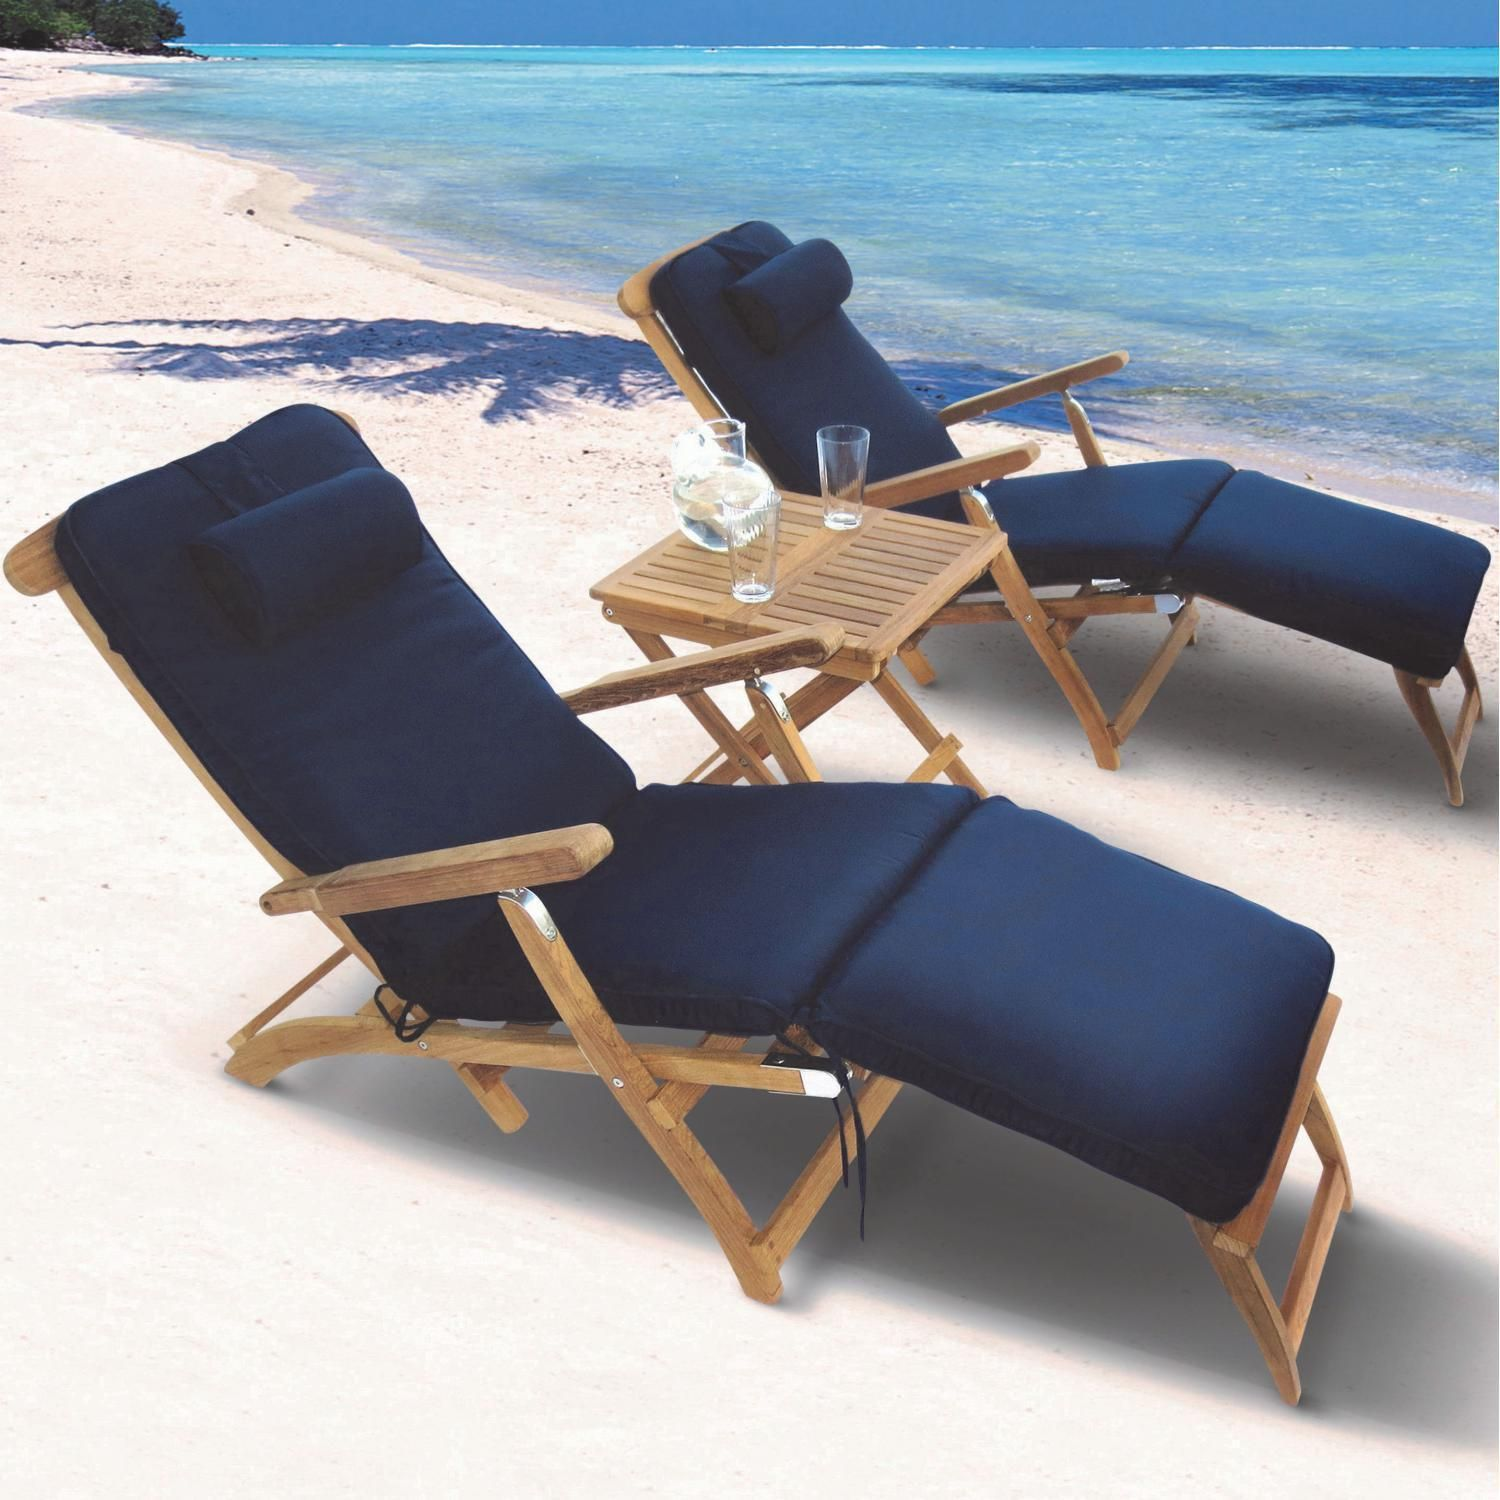 Steamer 3 Piece Teak Patio Chaise Lounge Set W Side Table And Sunbrella Canvas Navy Cushions By Royal Teak Collection Teak Outdoor Furniture Patio Chaise Lounge Teak Furniture